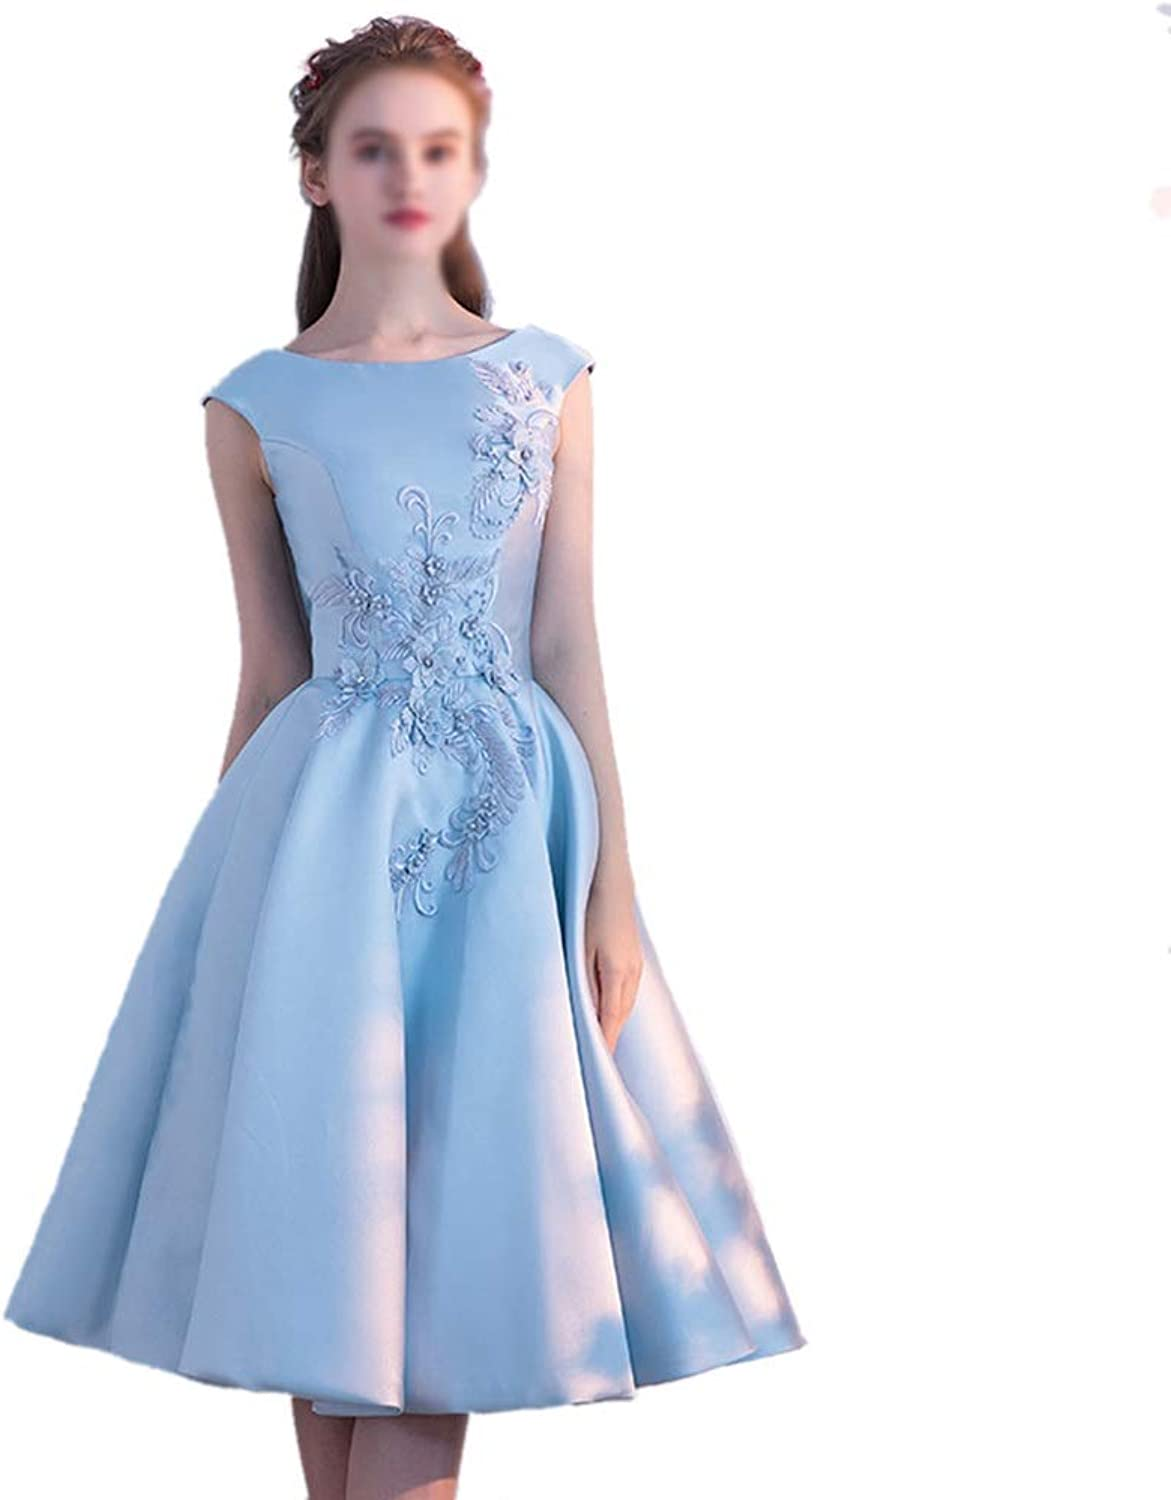 MISSKERVINFENDRIYUN Spring bluee Stain Sleeveless Embroidery Party Dress Bridesmaid Dress